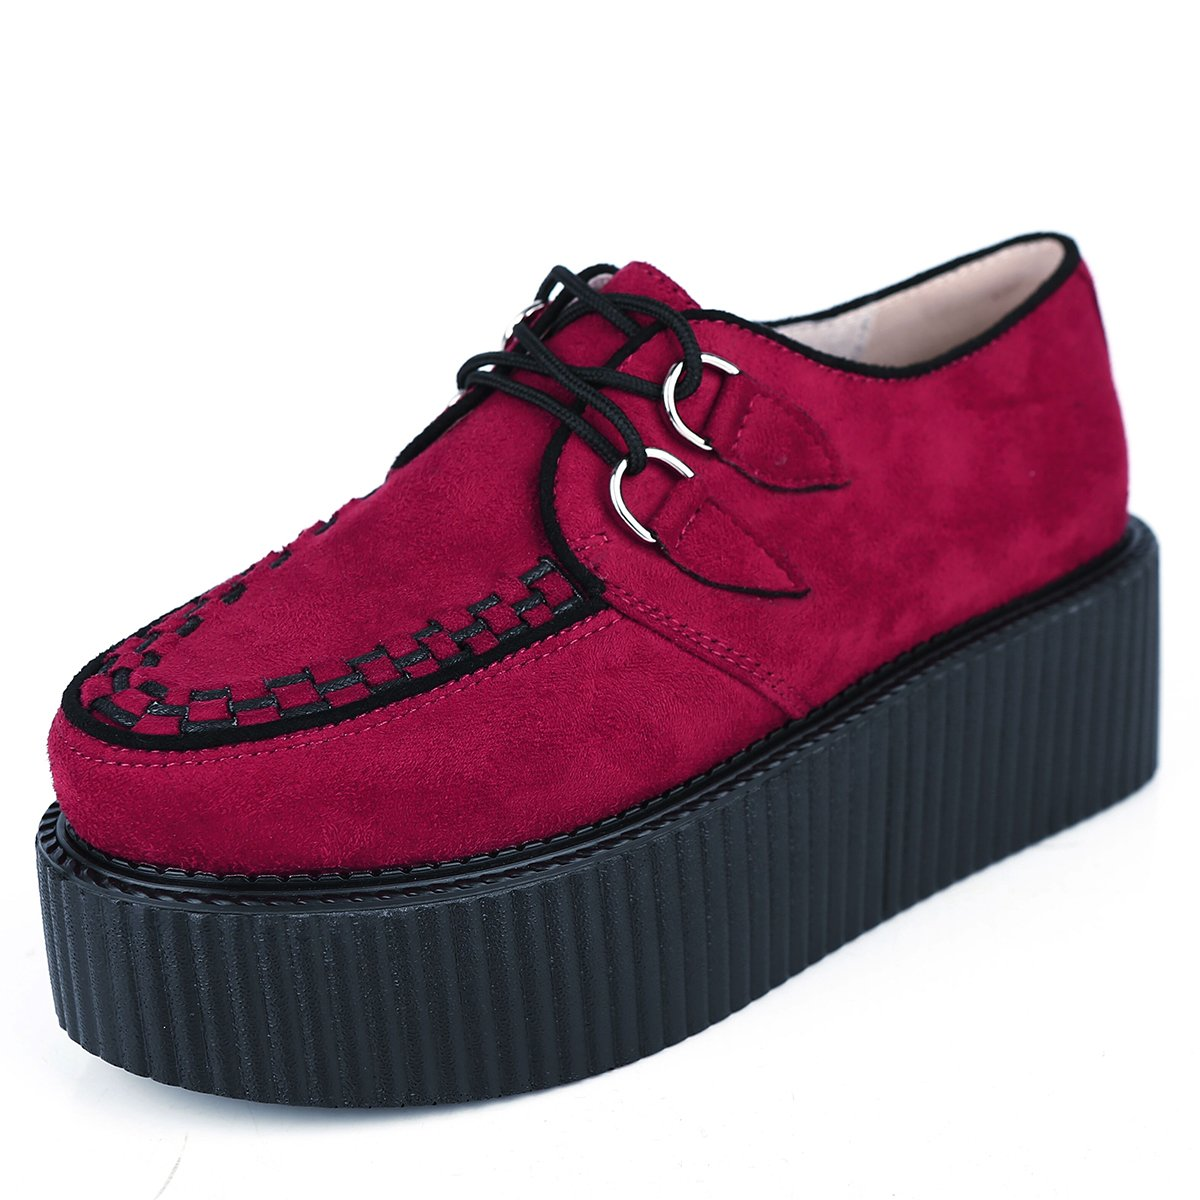 RoseG Femmes Forme Lacets Plate Forme Gothique Gothique Punk 12559 Creepers Casual Chaussures Rouge b6c7bbe - reprogrammed.space